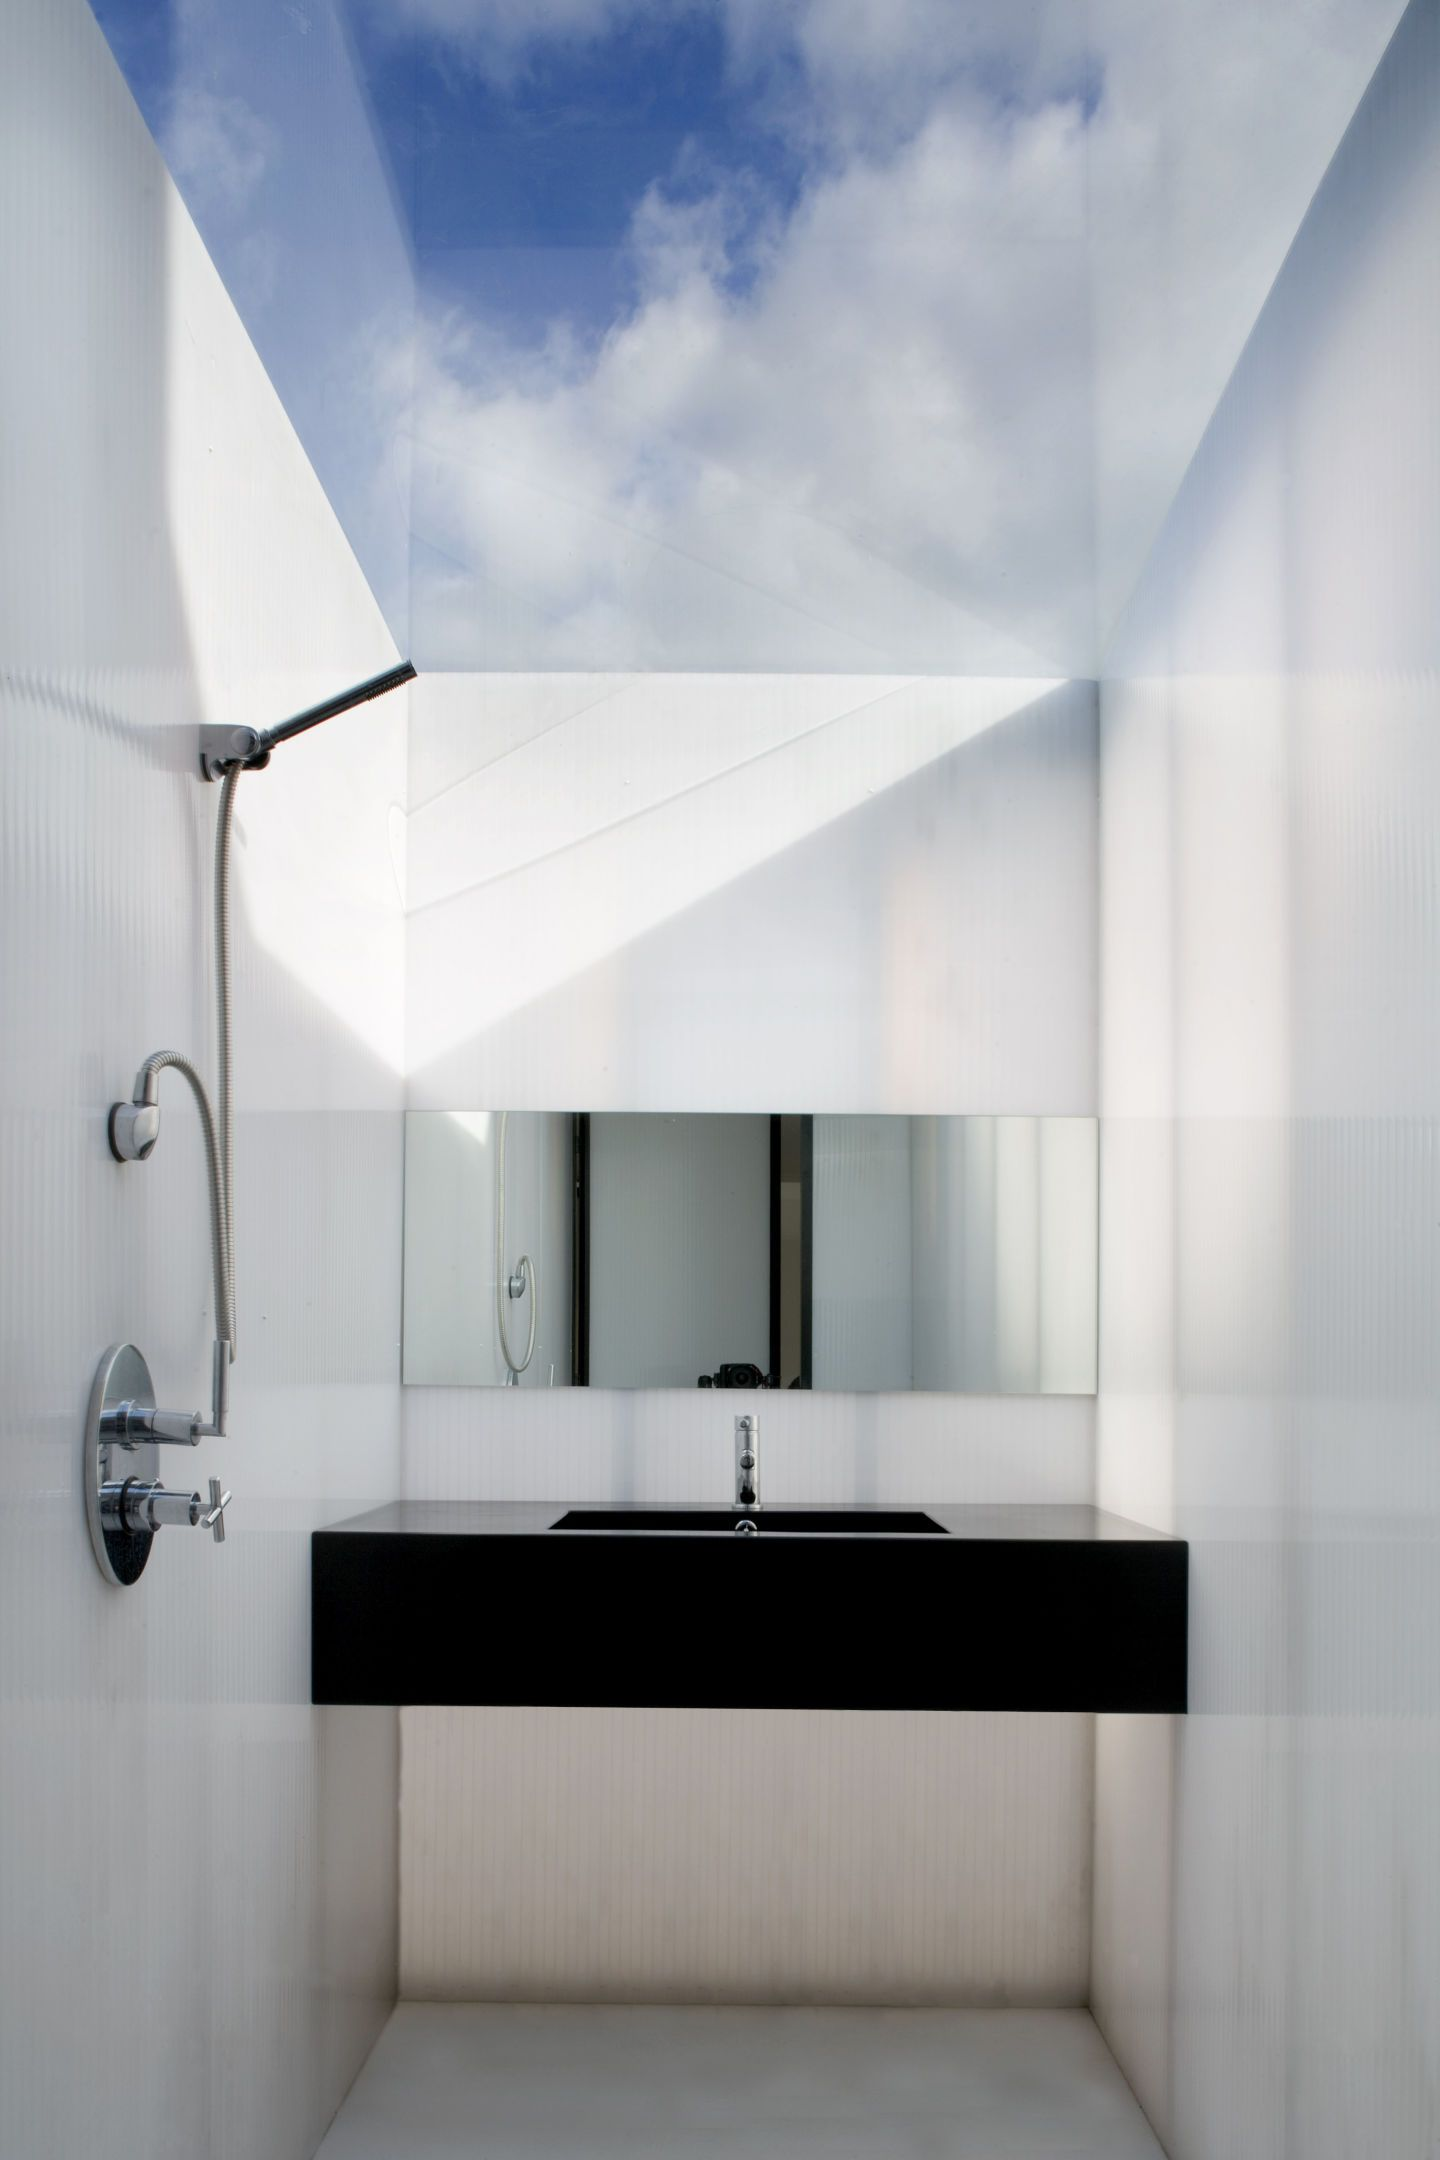 toplit, projecting wetroom - The Plastic House - Dublin, Ireland - Urban Agency - Divisare